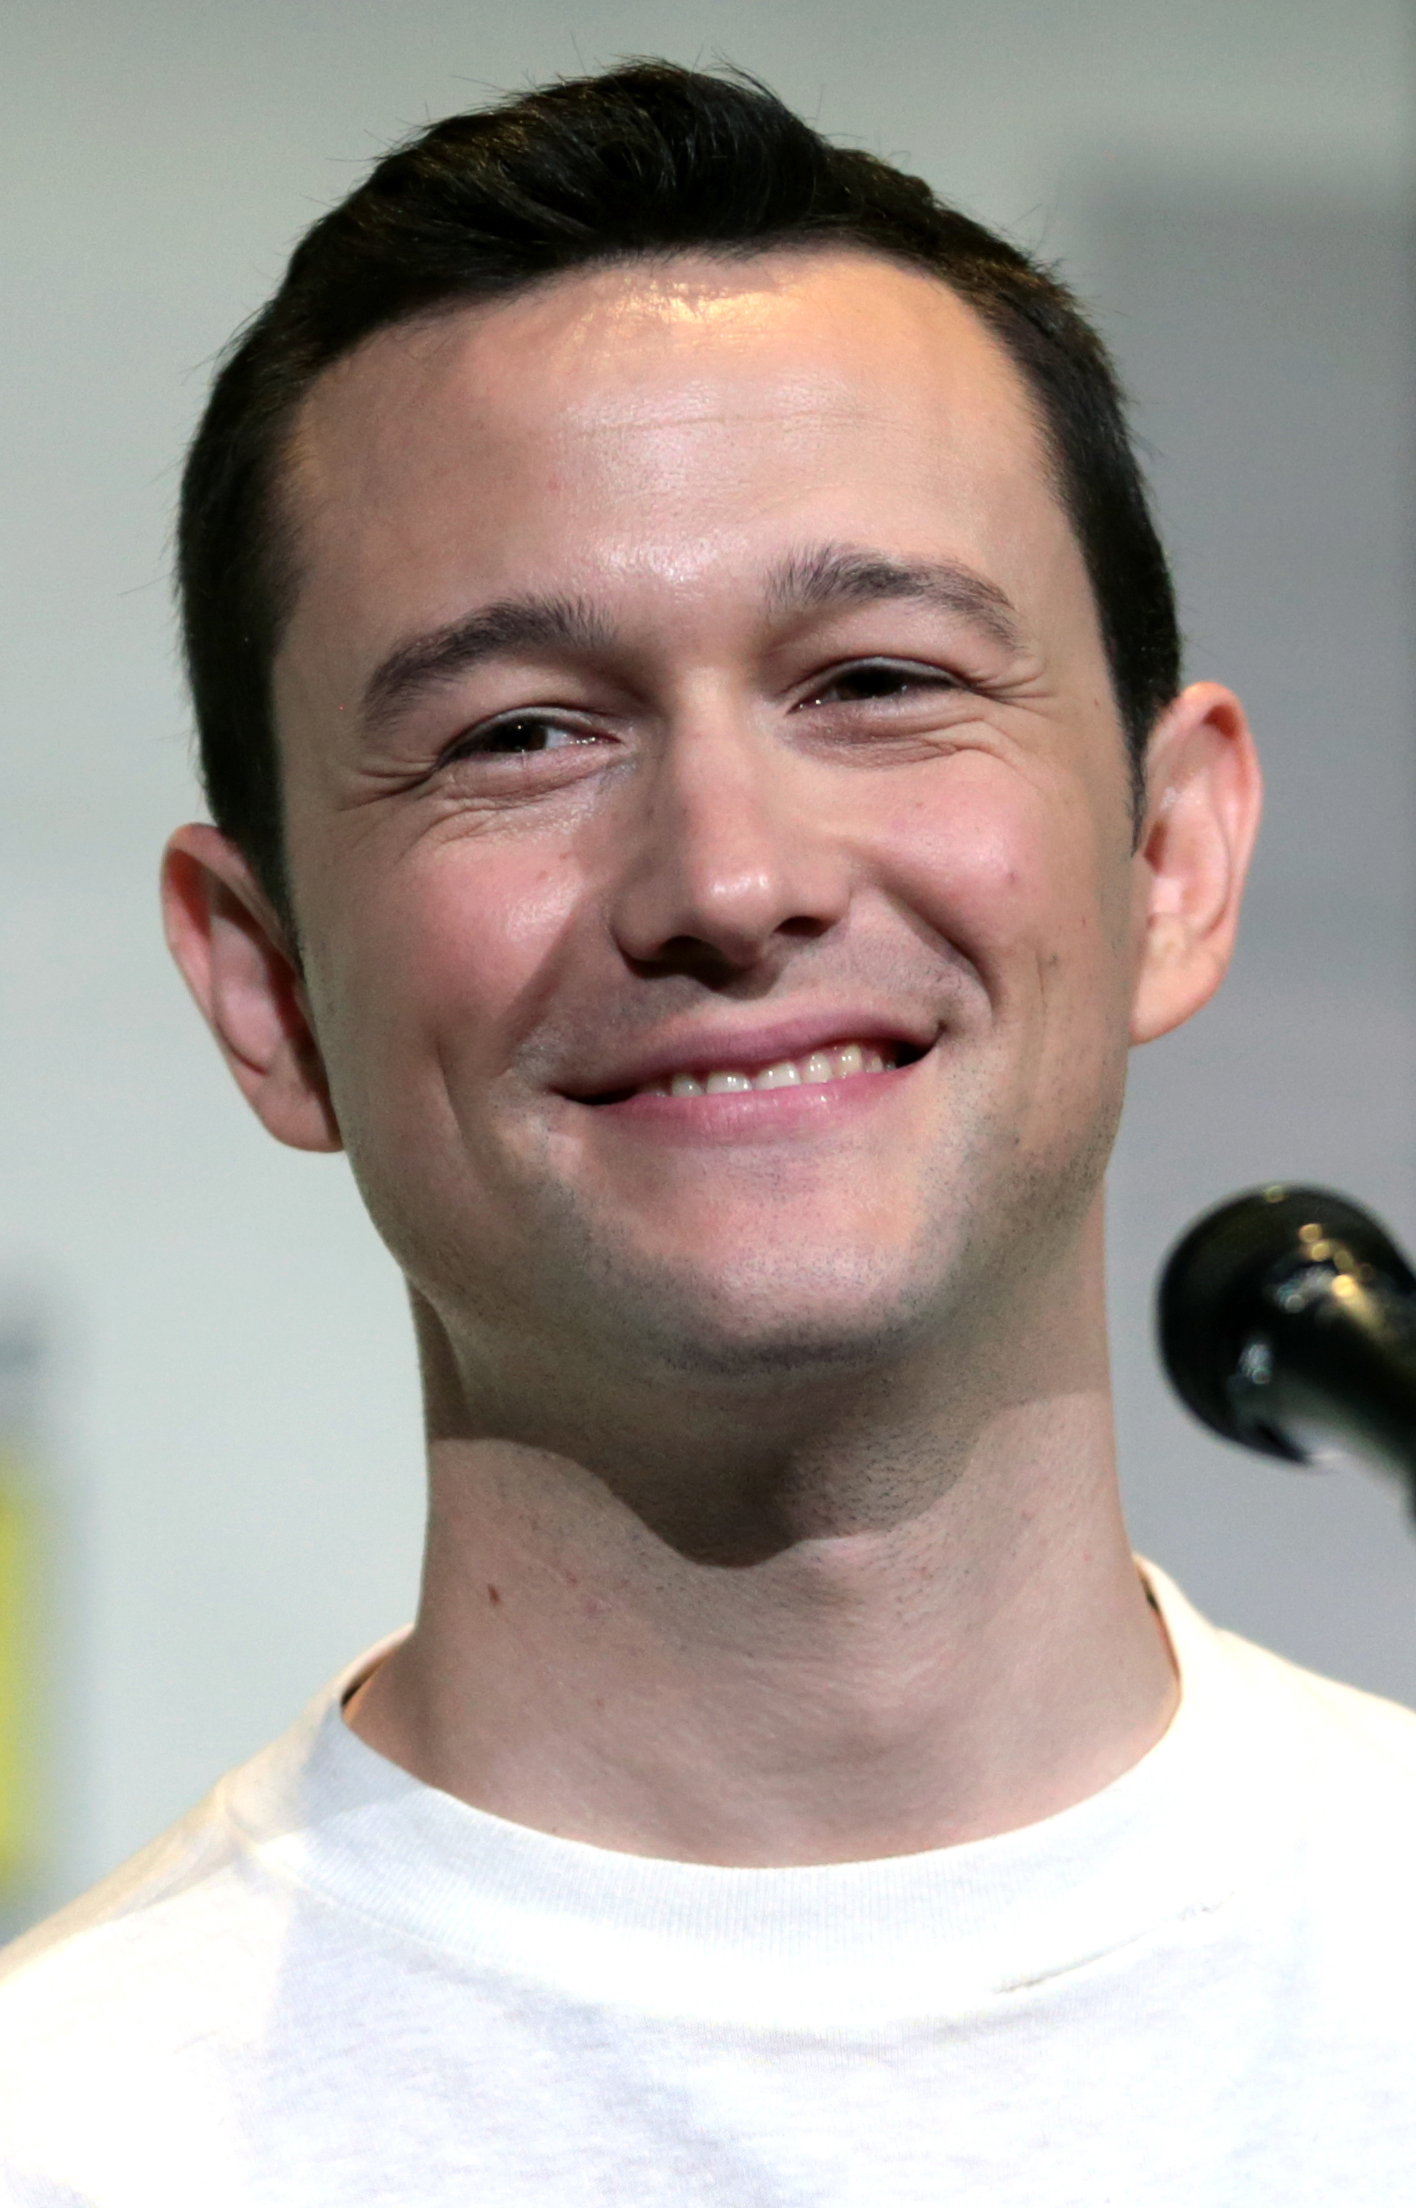 The 38-year old son of father Dennis Levitt and mother Jane Gordon Joseph Gordon-Levitt in 2019 photo. Joseph Gordon-Levitt earned a  million dollar salary - leaving the net worth at 35 million in 2019